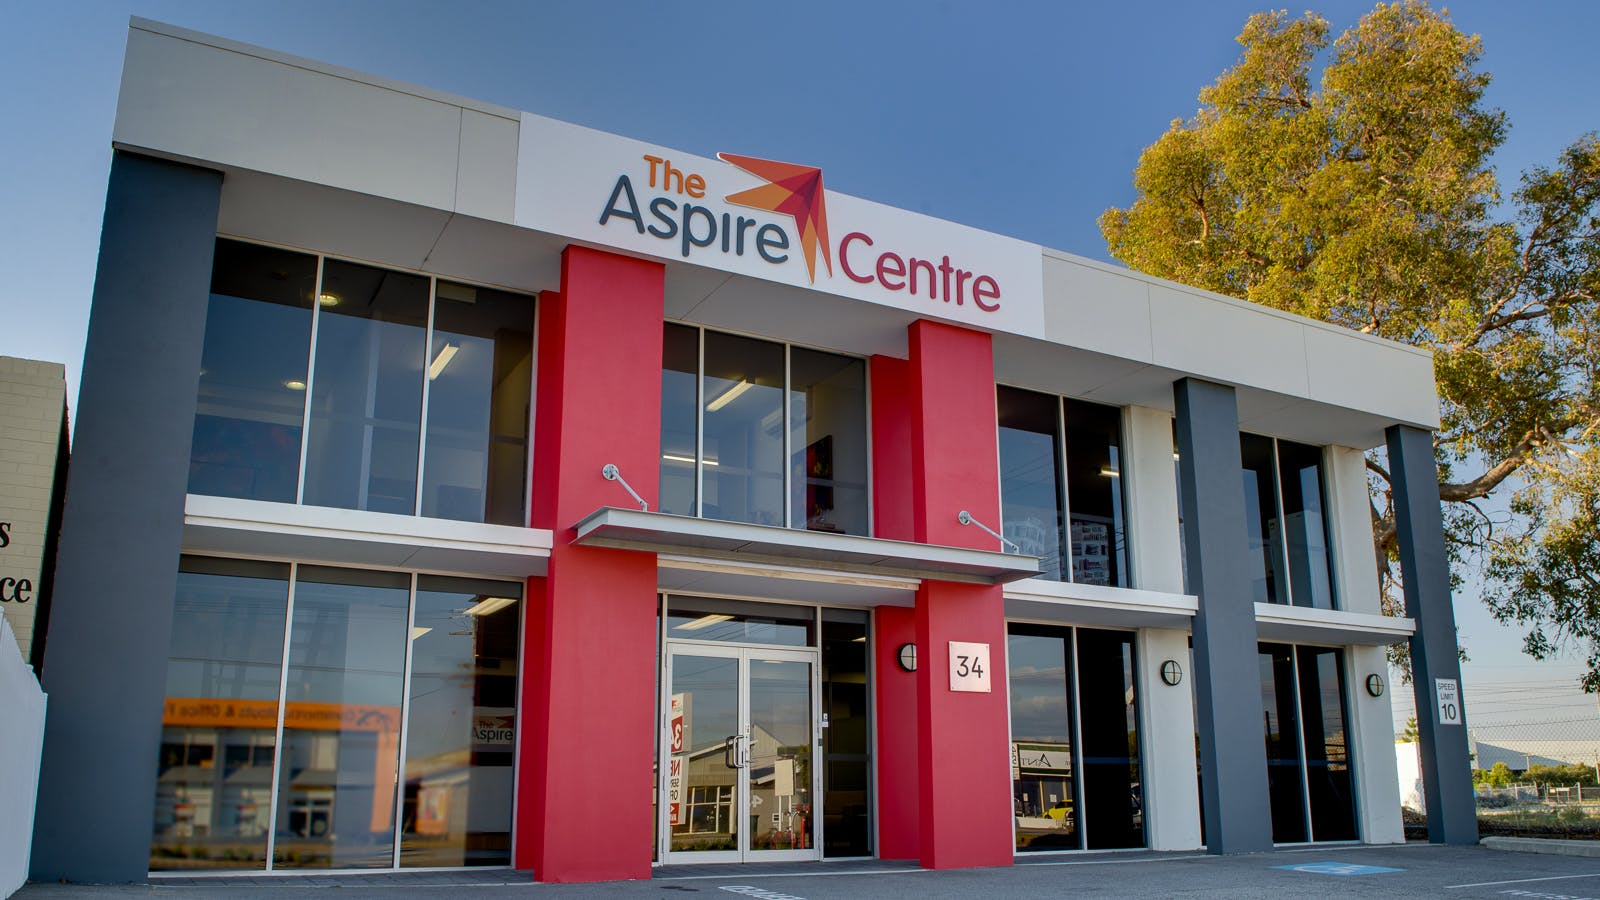 Meeting room at The Aspire Centre, image 5